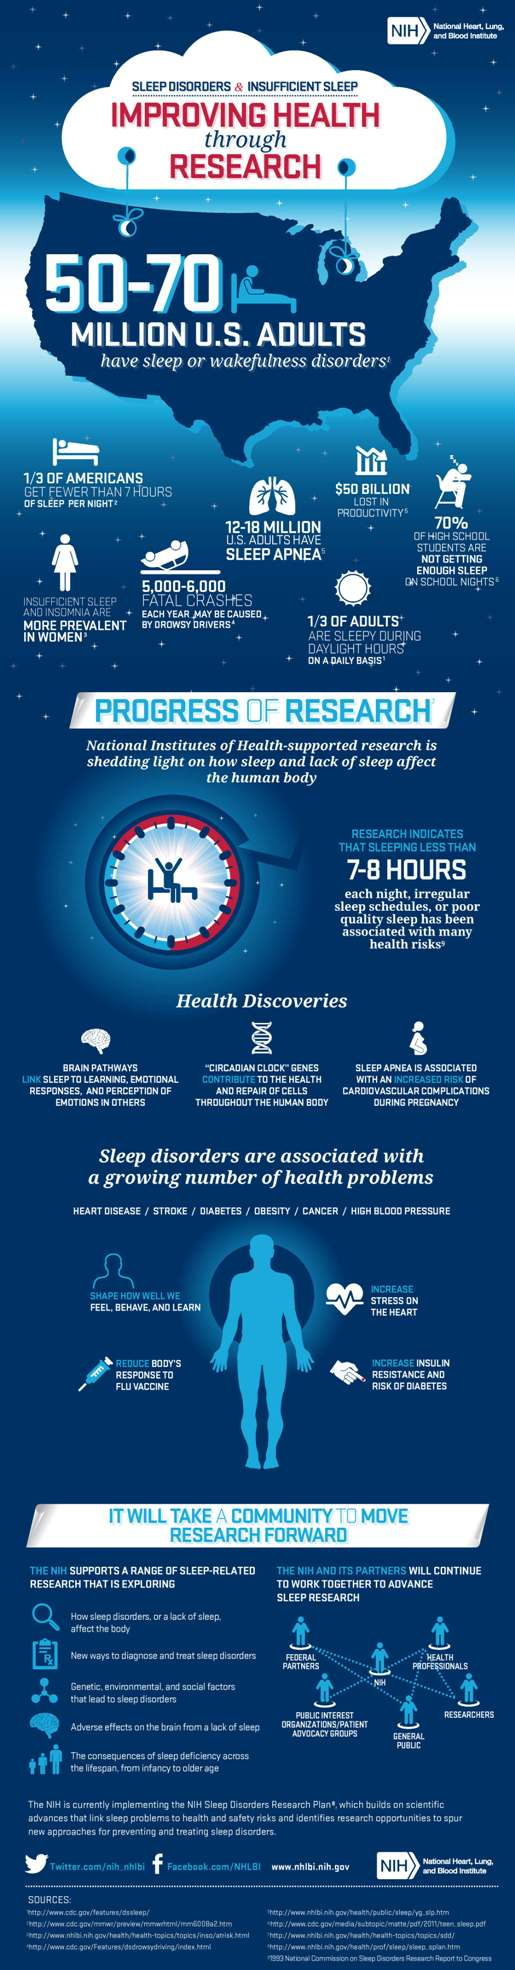 NIH Sleep and Health